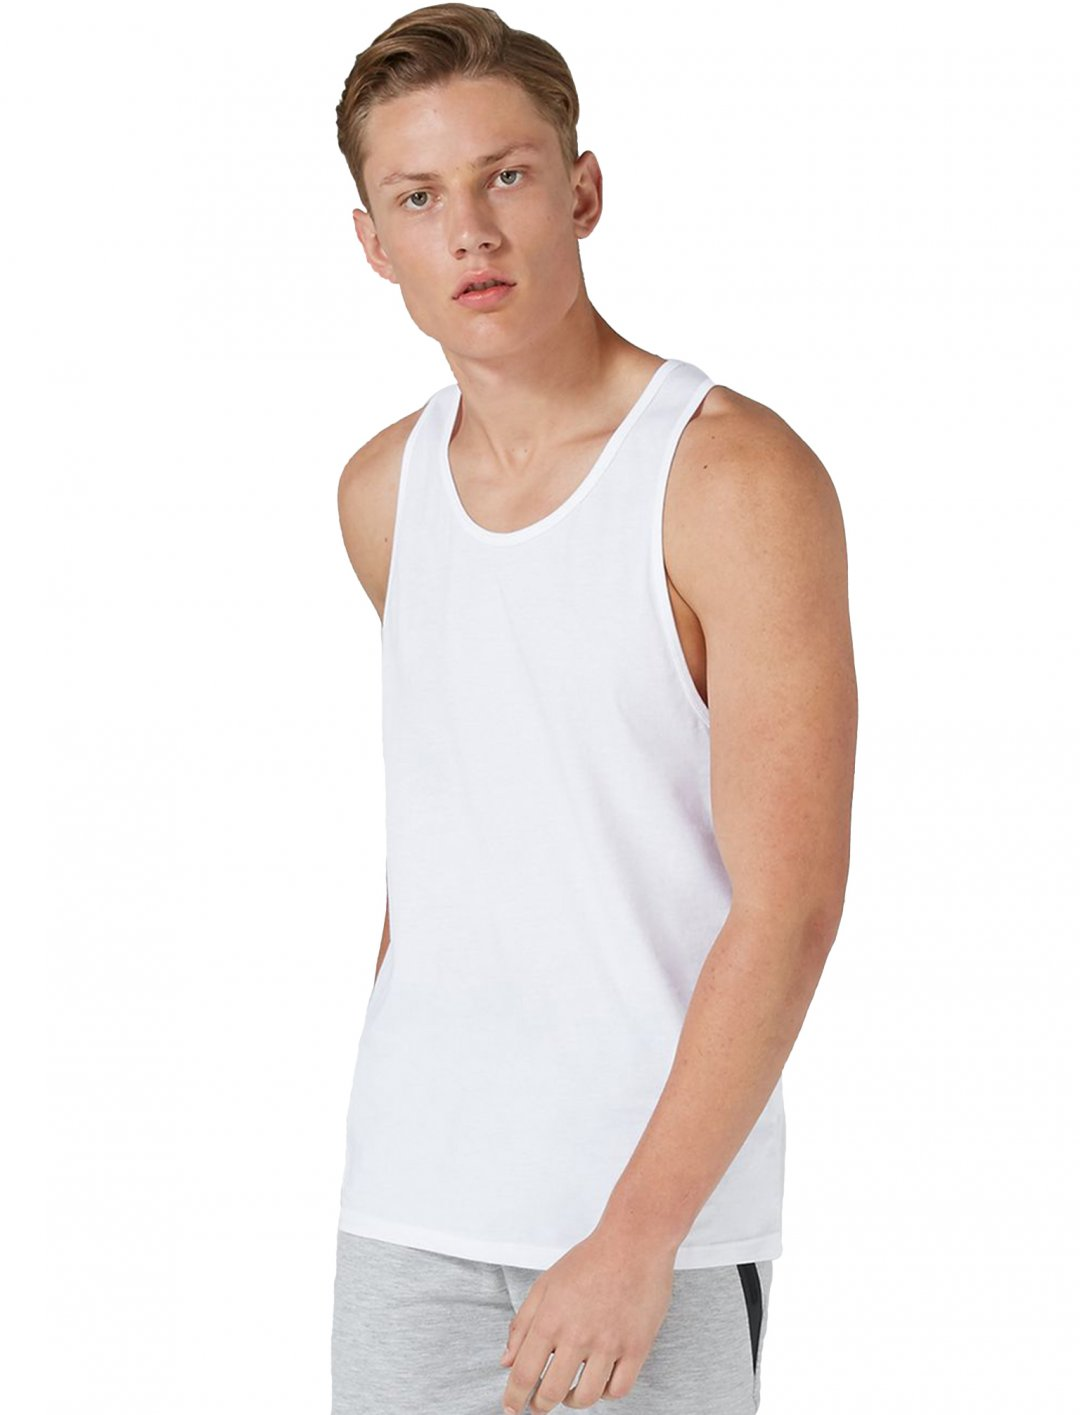 "Topman White Slim Vest Multipack {""id"":5,""product_section_id"":1,""name"":""Clothing"",""order"":5} Topman"